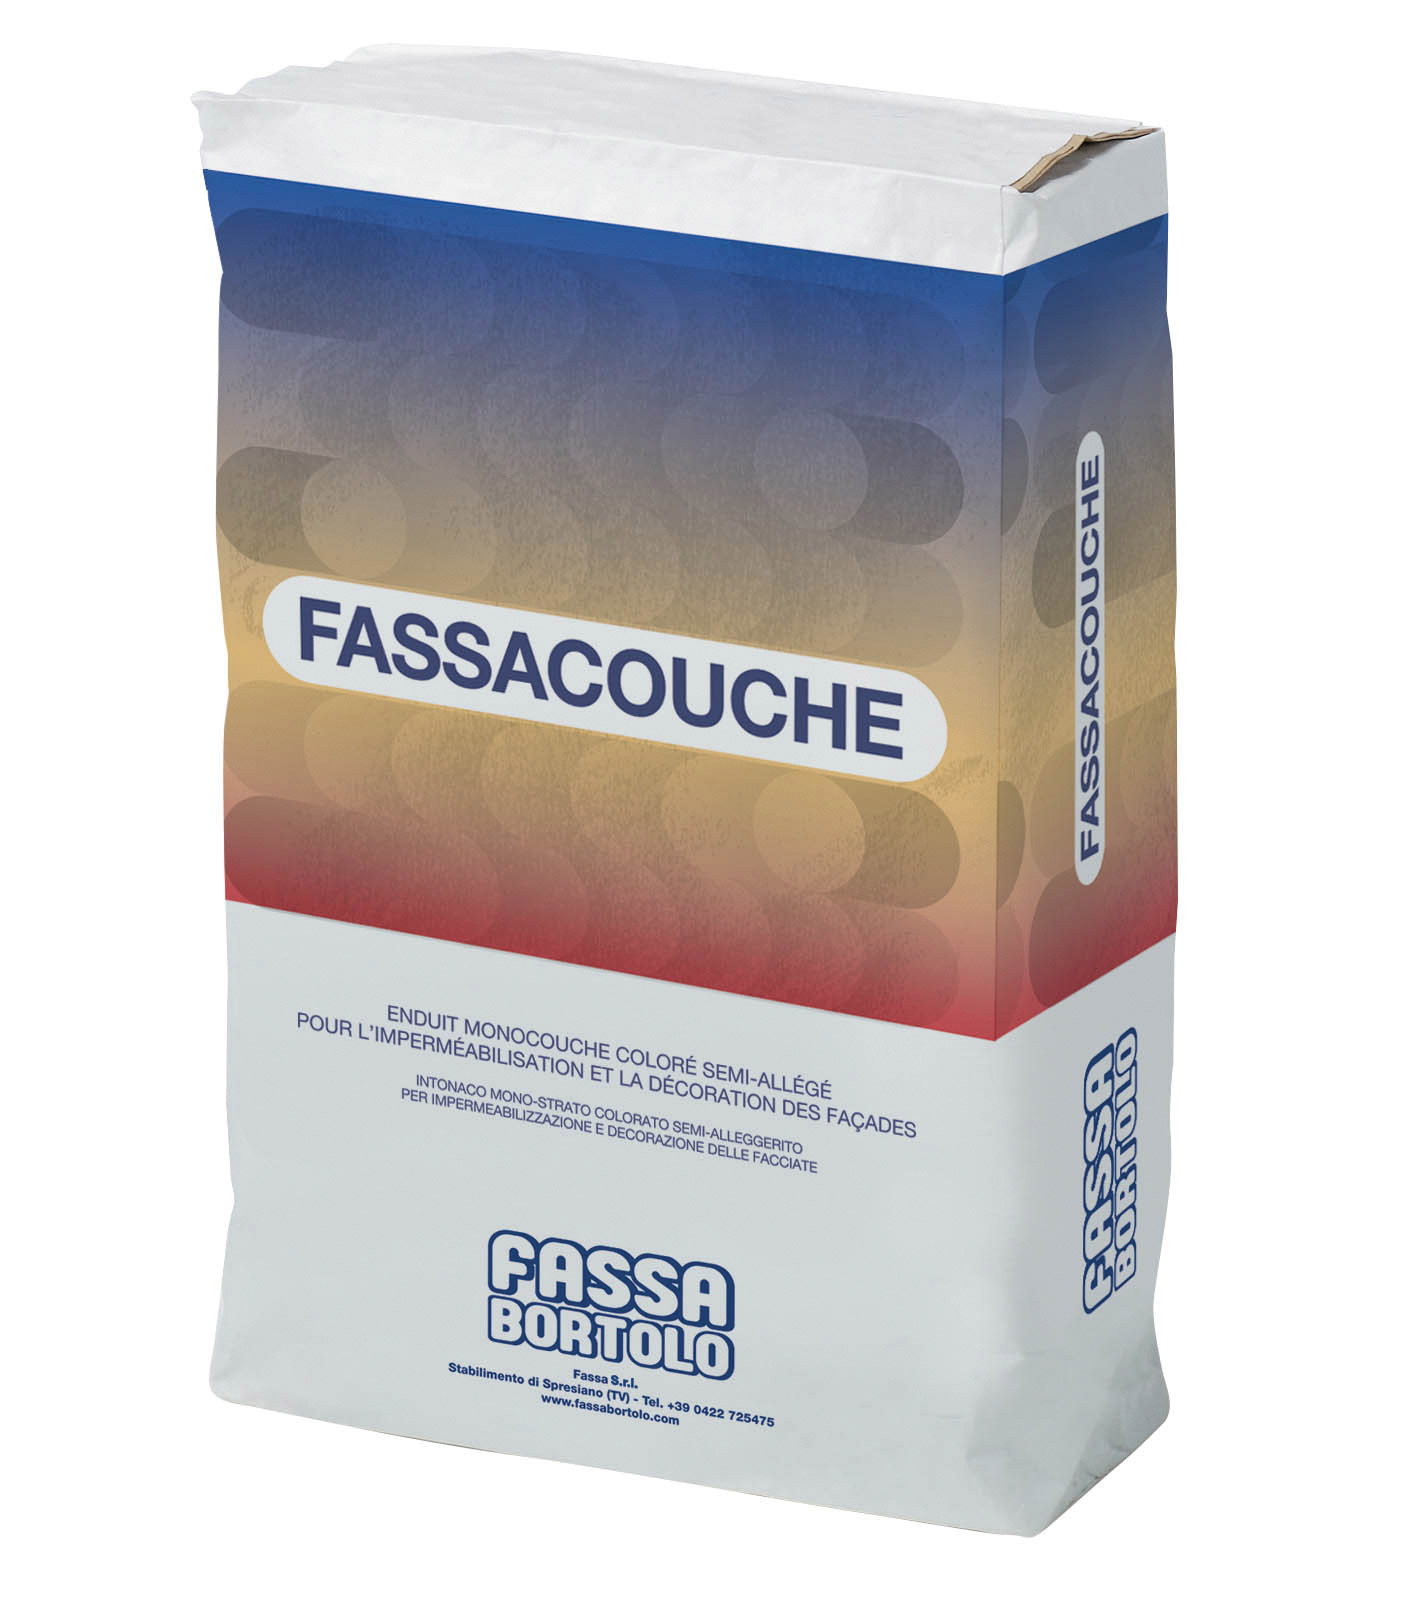 FASSACOUCHE: Semi-lightweight through coloured render for protecting and decorating facades